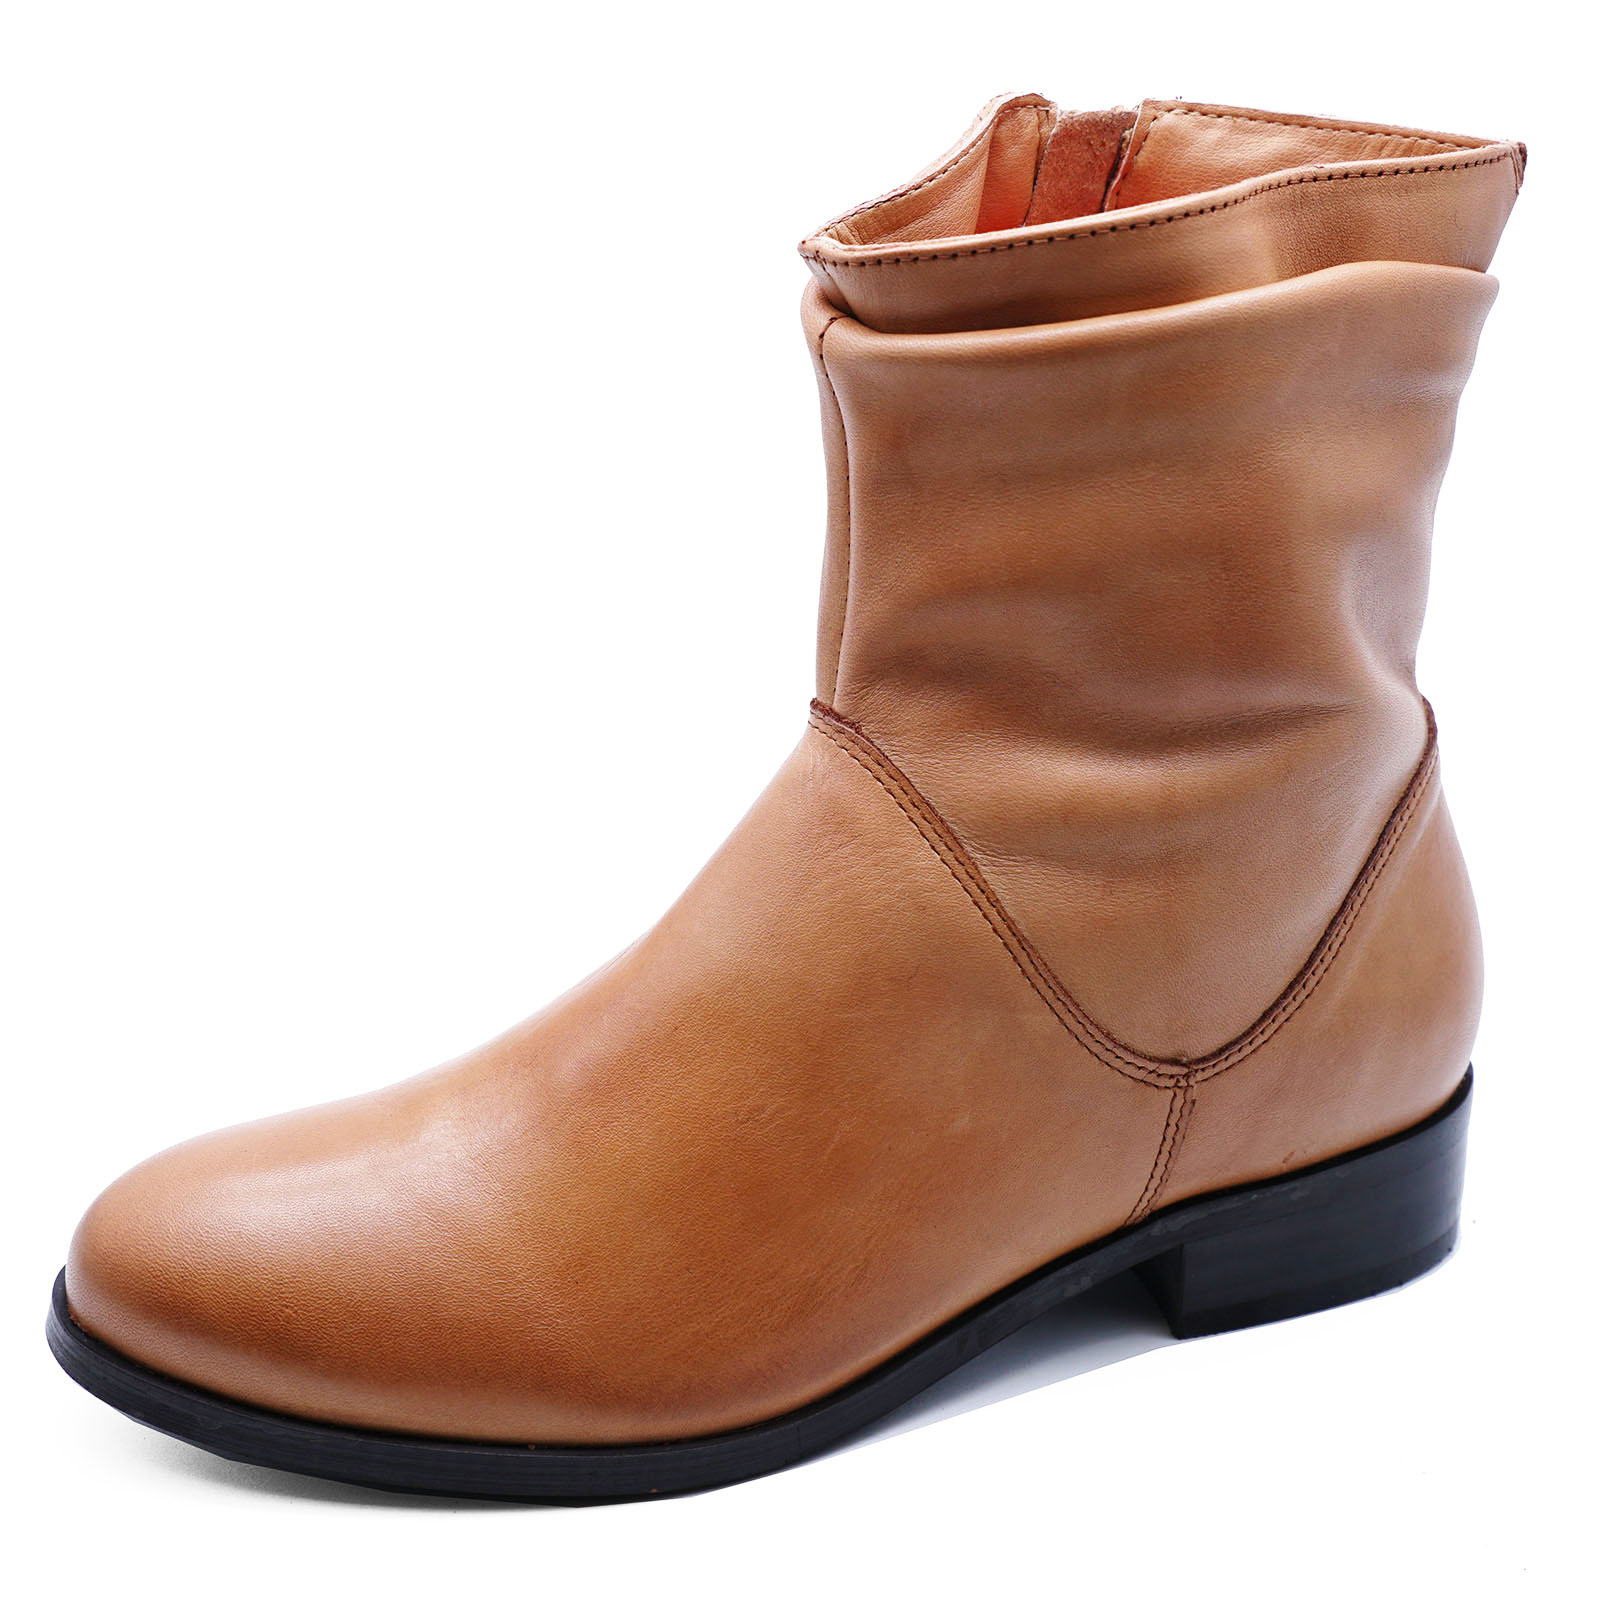 LADIES-FLAT-GENUINE-LEATHER-TAN-ZIP-UP-ANKLE-CALF-BOOTS-COMFY-SHOES-SIZES-2-9 thumbnail 6